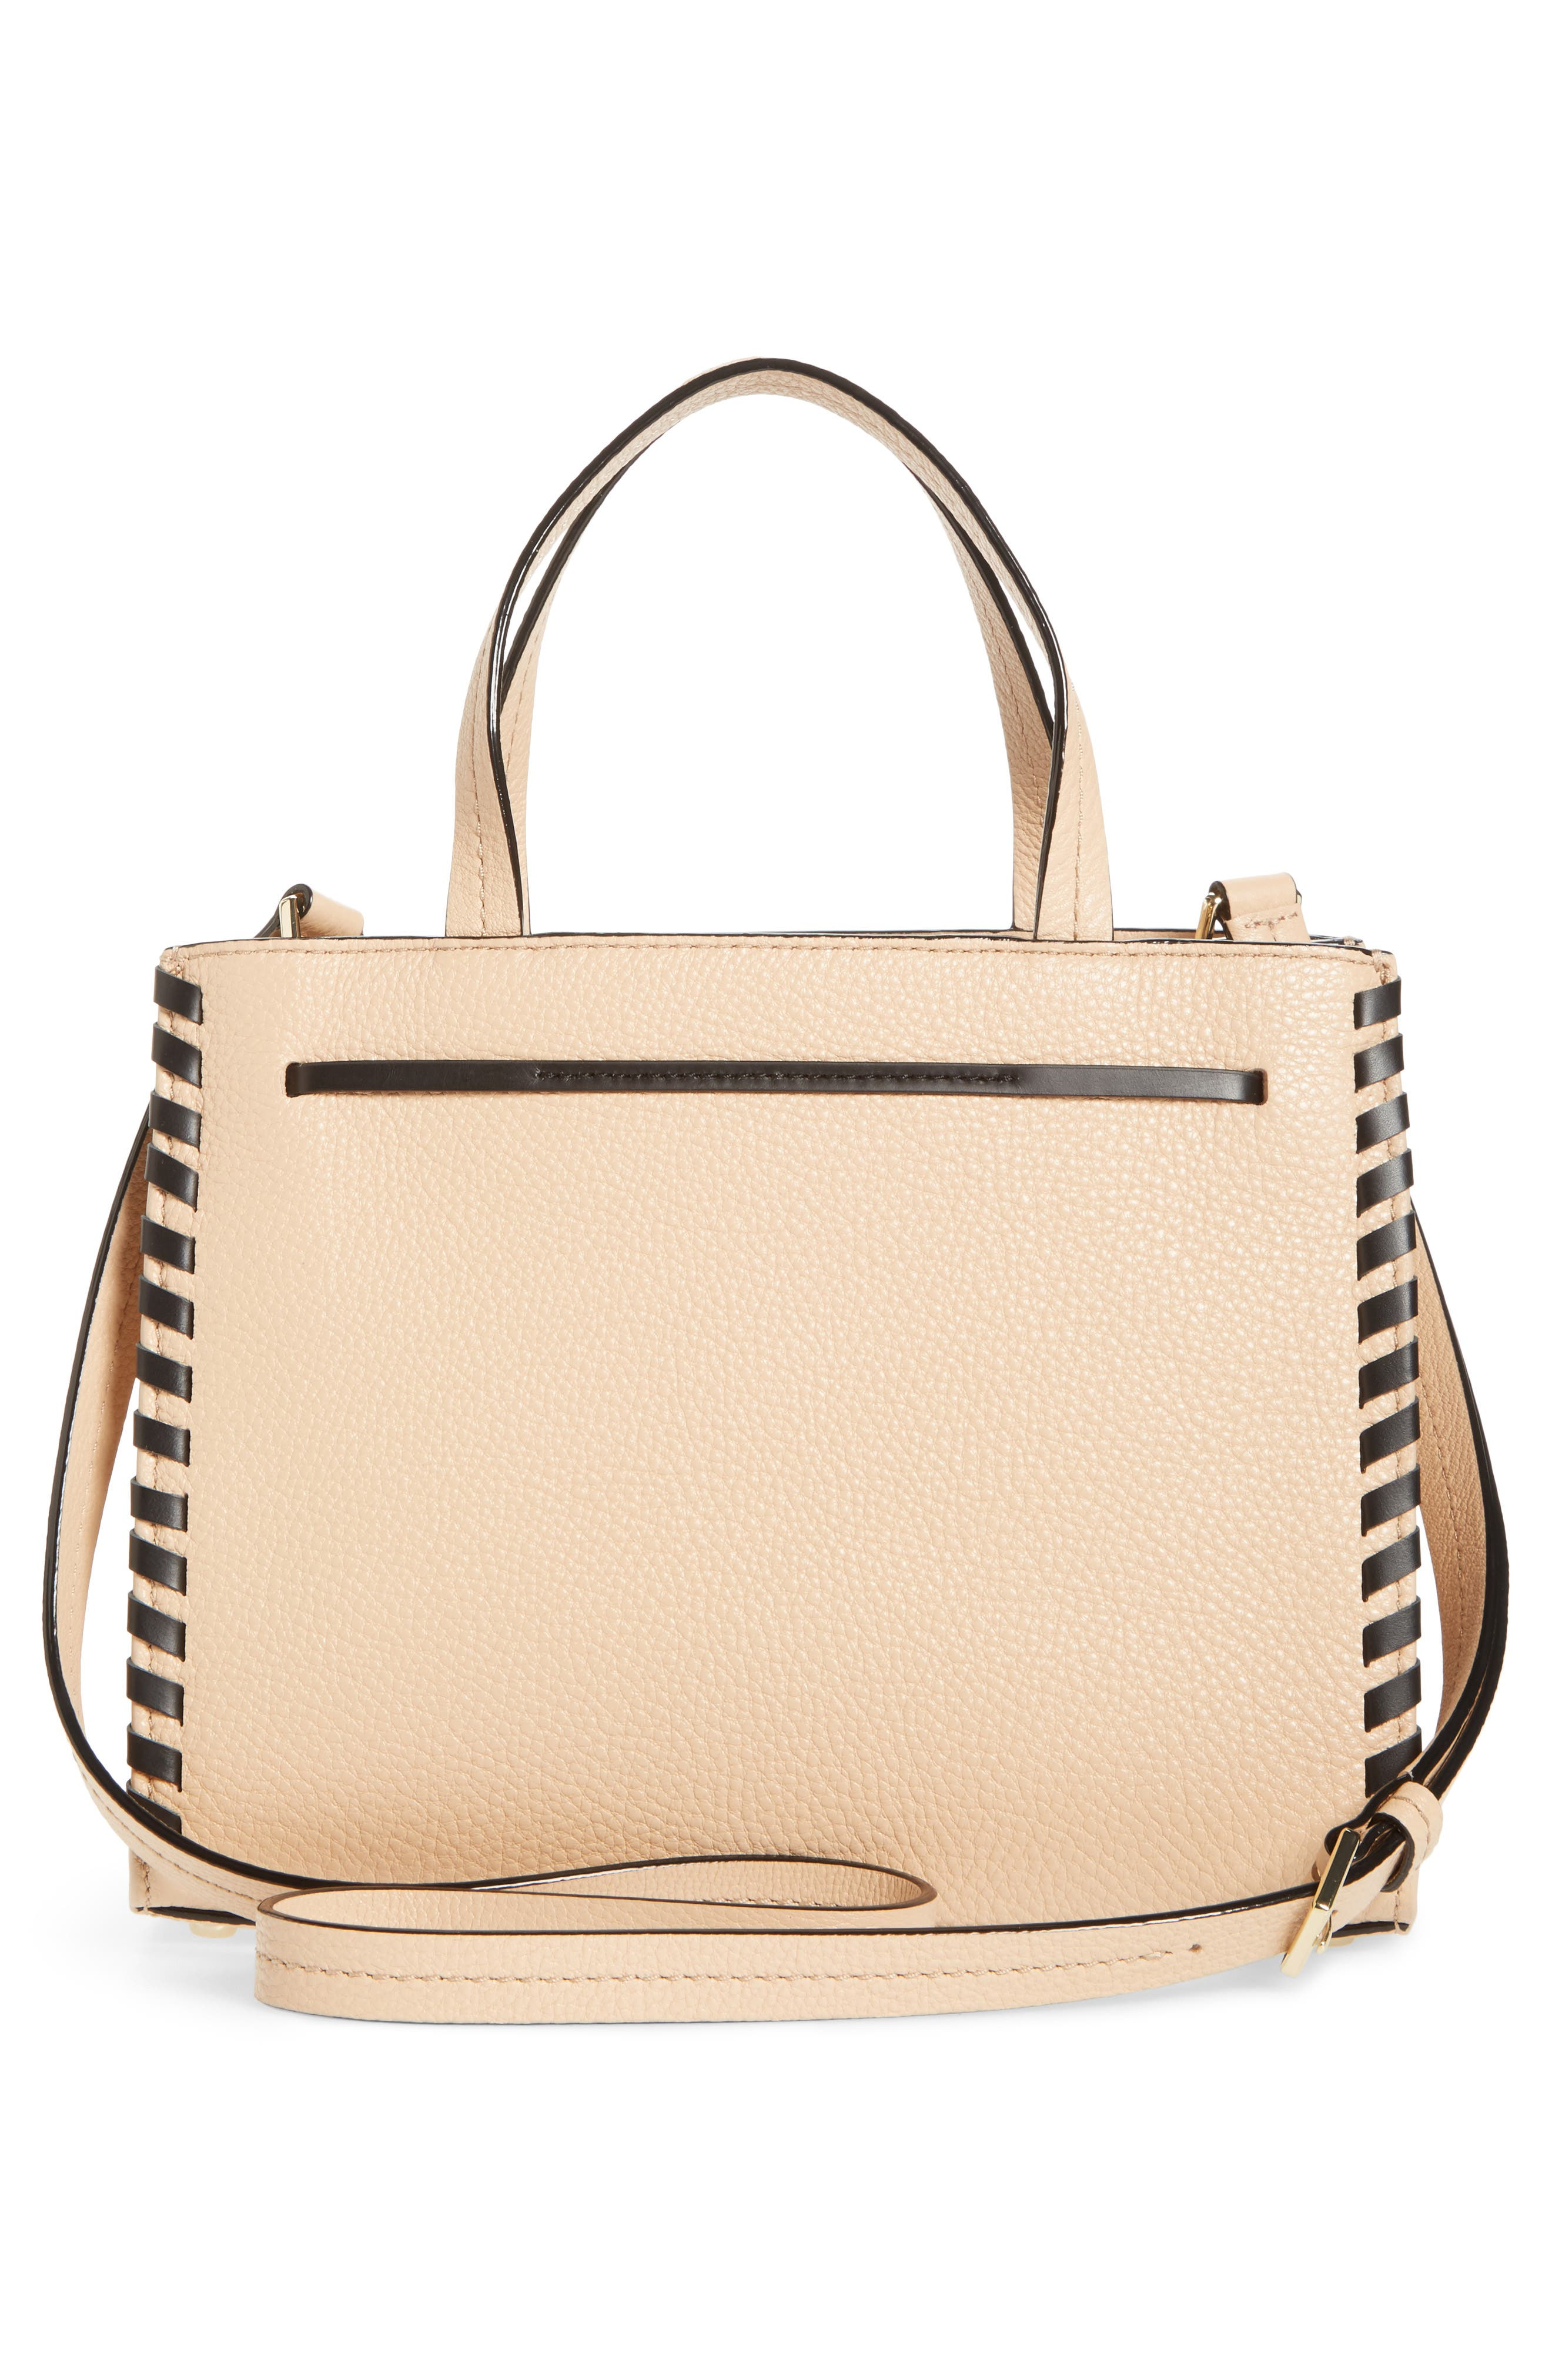 KATE SPADE NEW YORK,                             woven small hayes street - isobel leather satchel,                             Alternate thumbnail 3, color,                             250